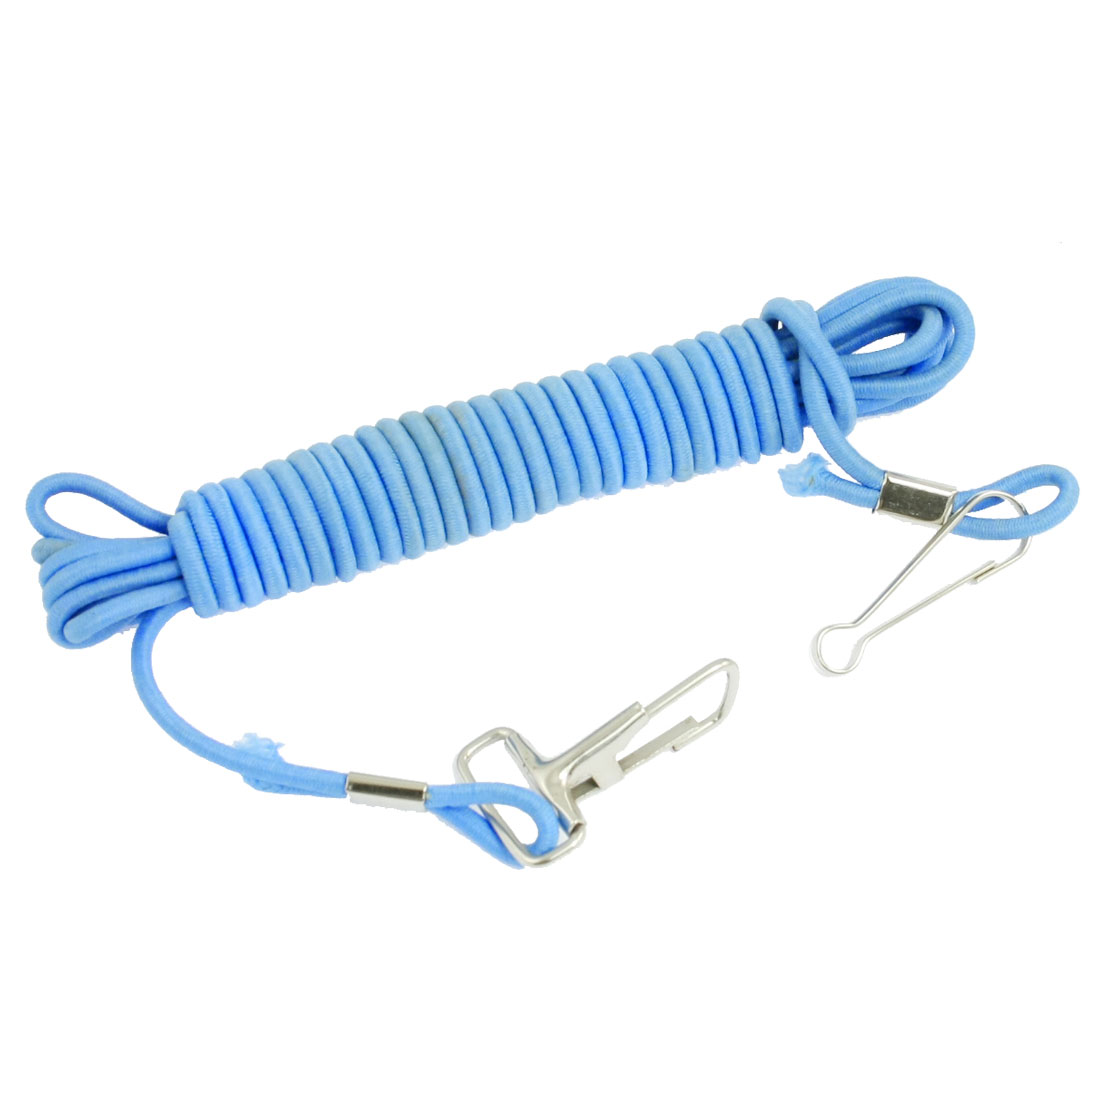 118 lobster hooks elastic rope line fishing tackle tool for Free line fishing